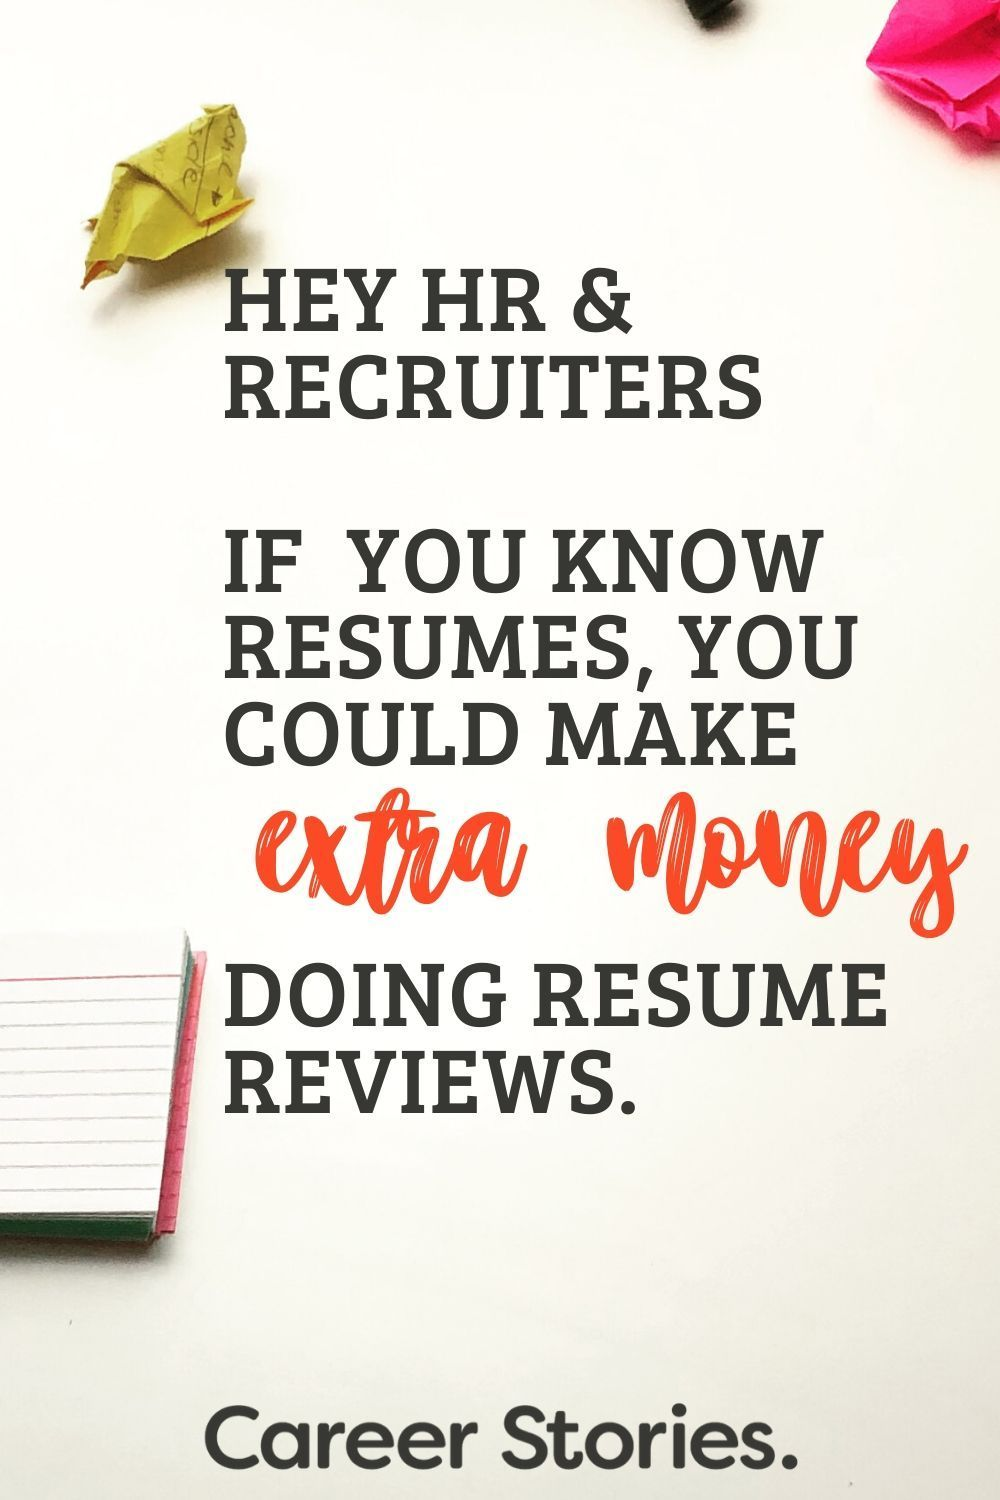 How to review a client's resume (and add a business line